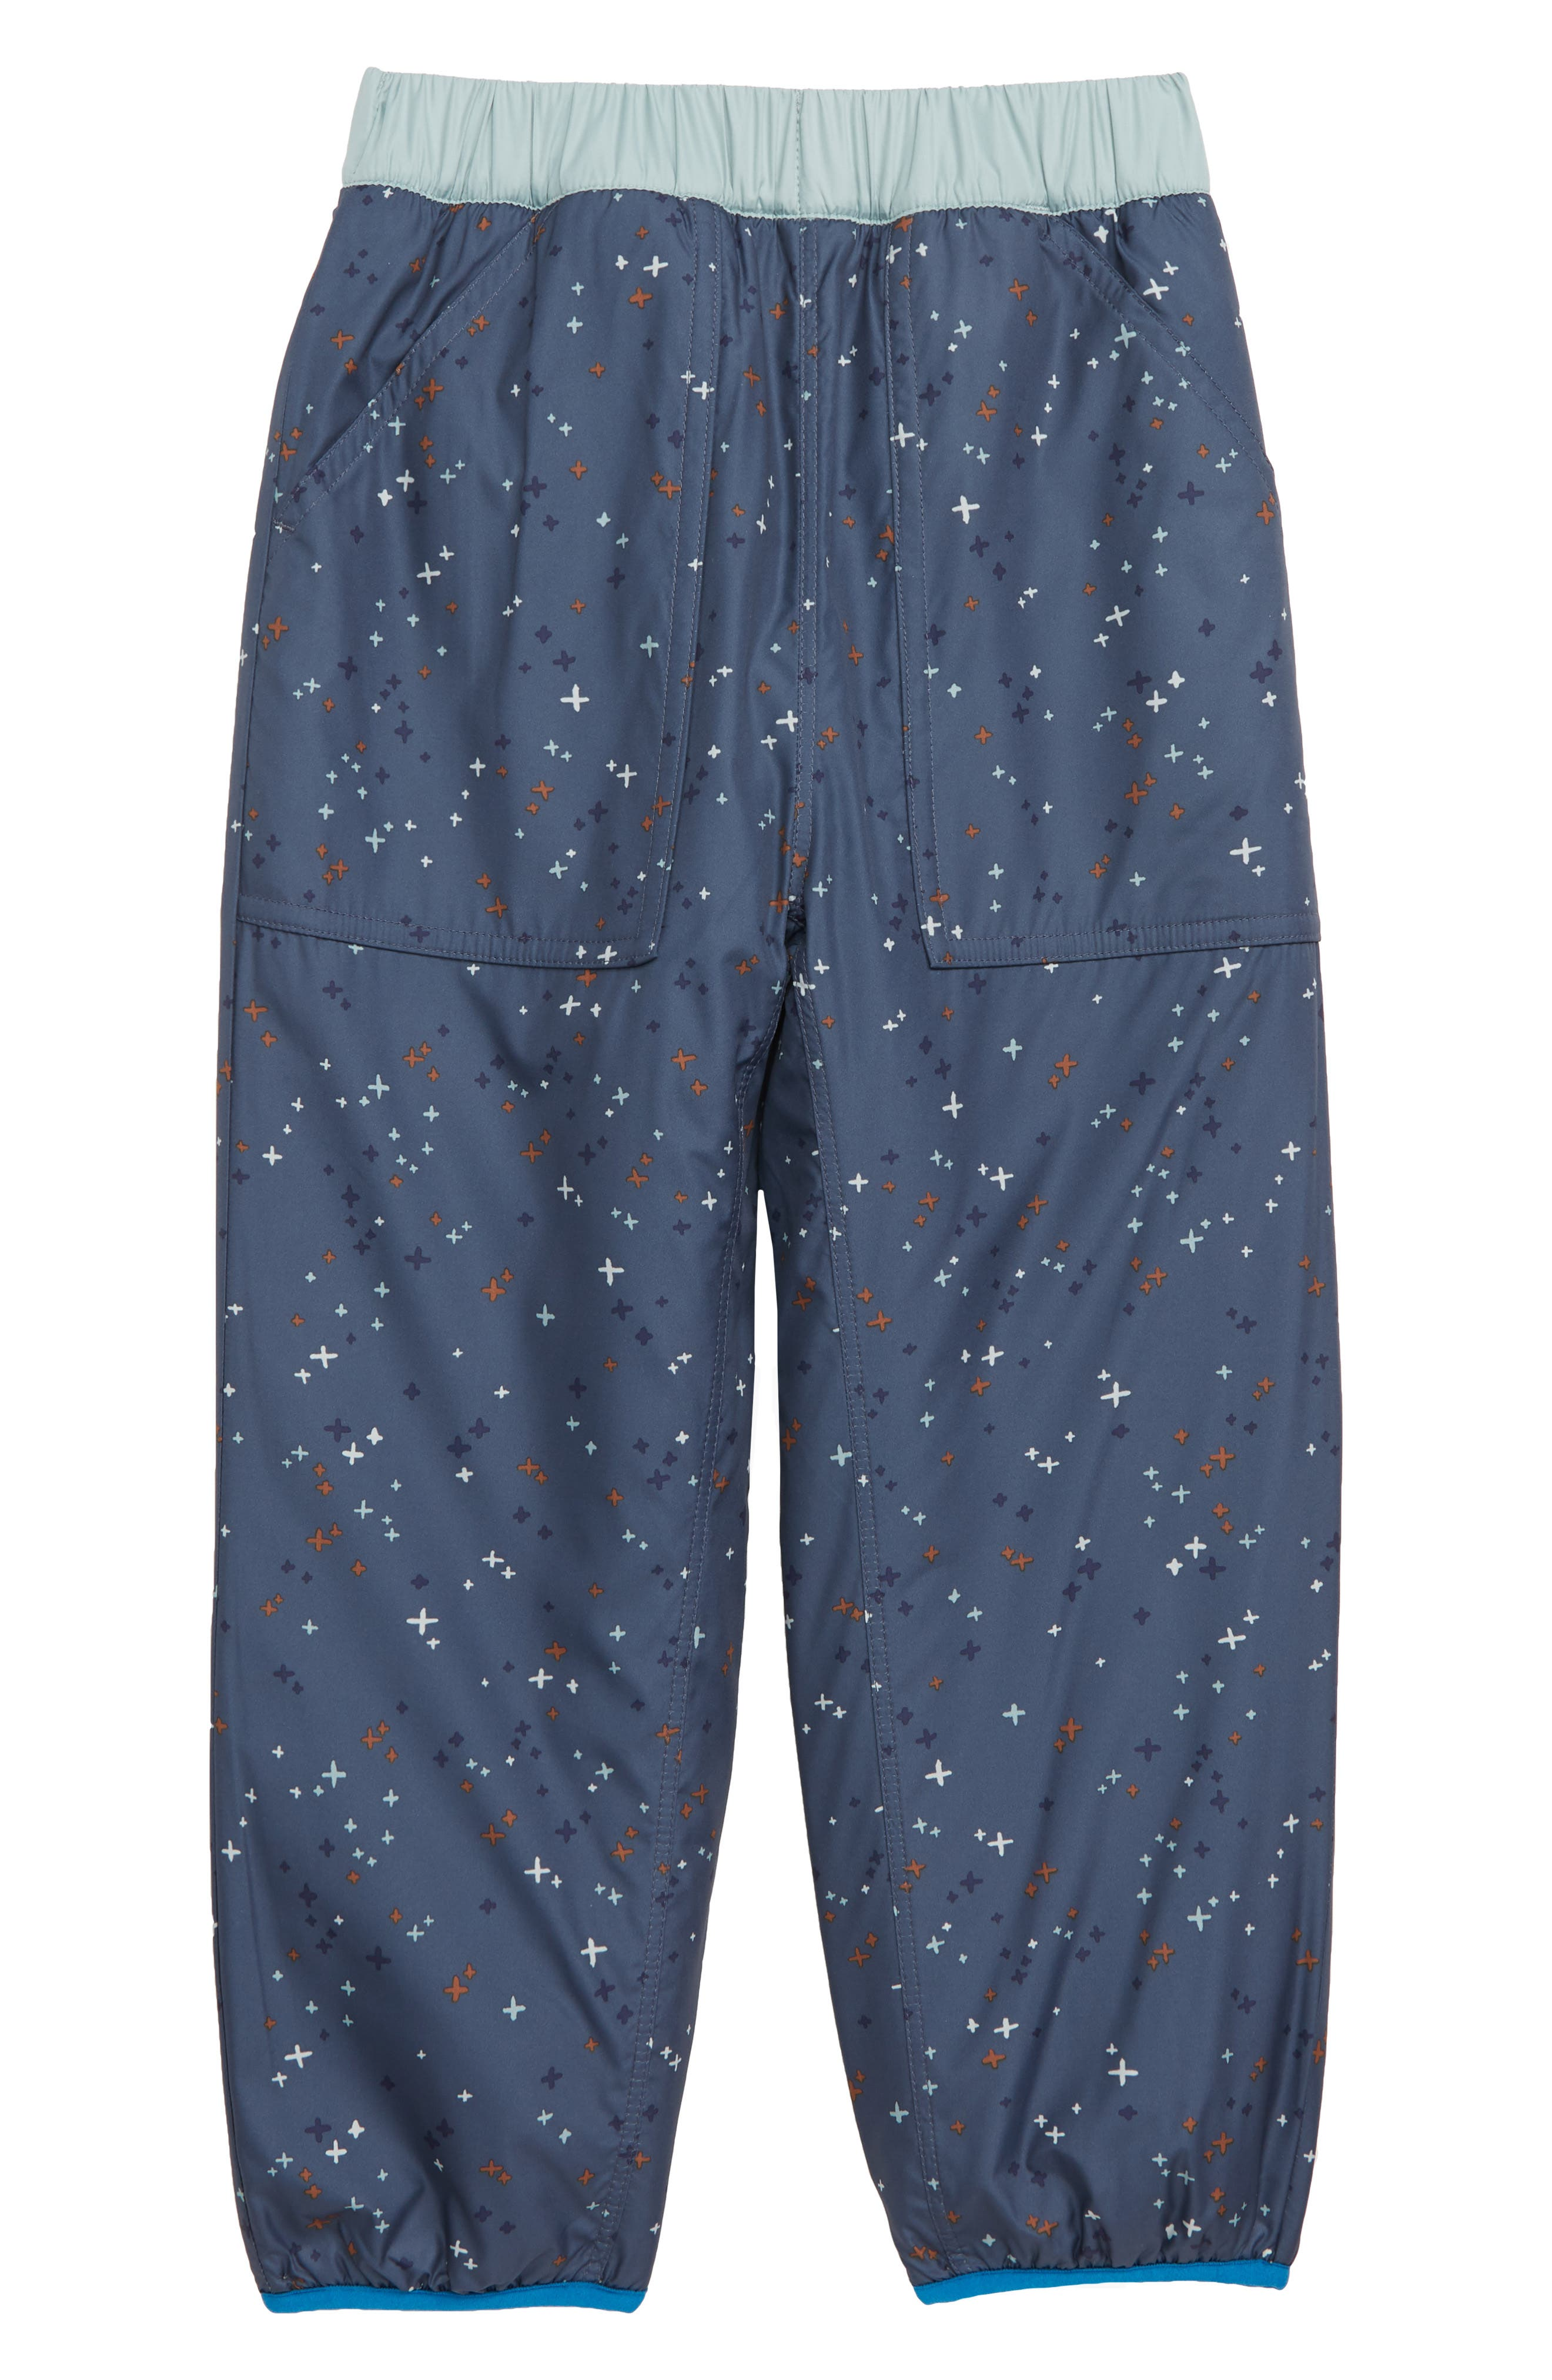 Toddler Boys Patagonia Tribbles Reversible Water Repellent Snow Pants Size 3T  Blue